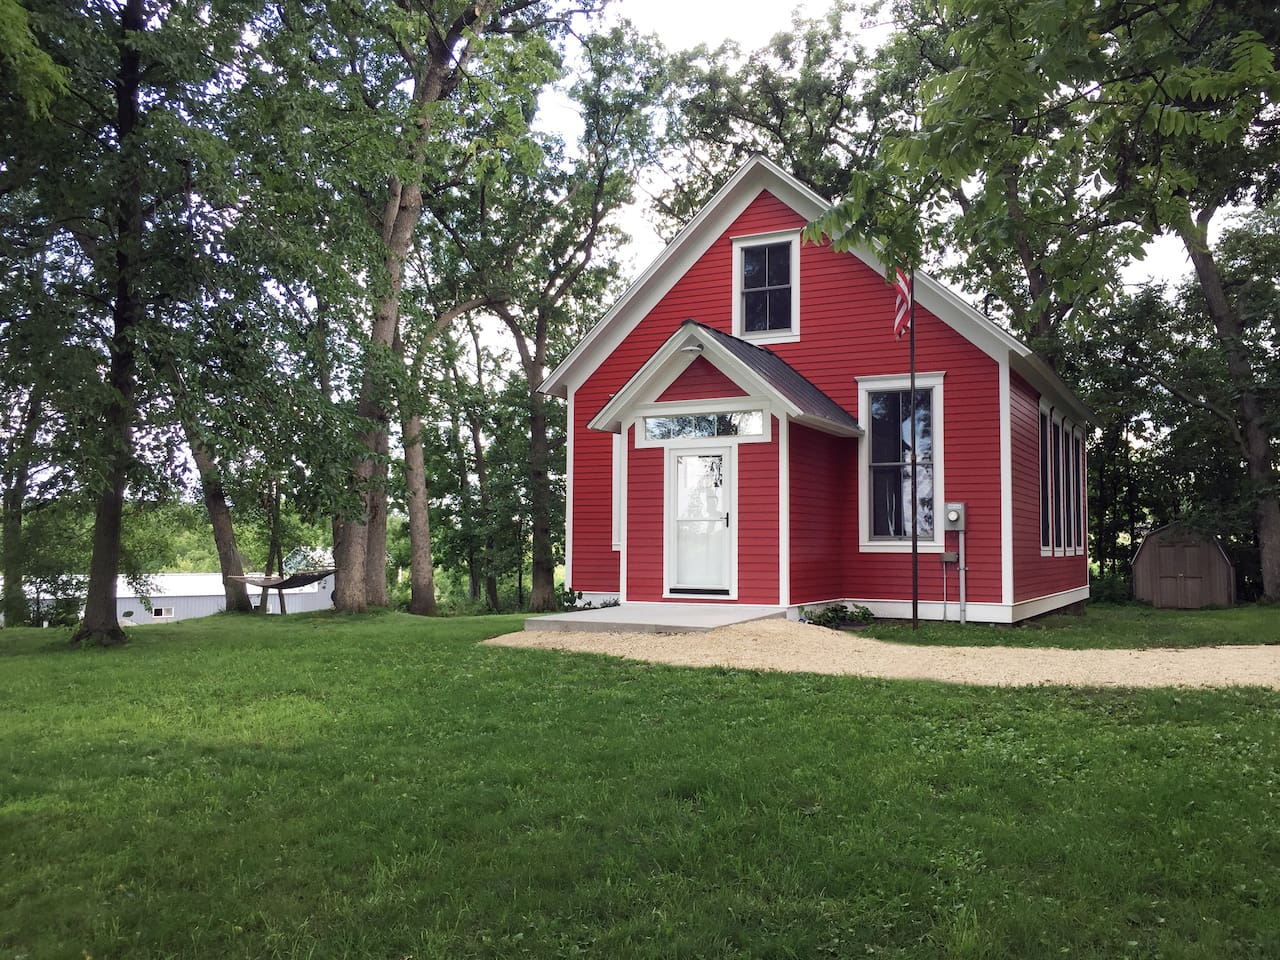 1912 original school house on wooded one acre lot.